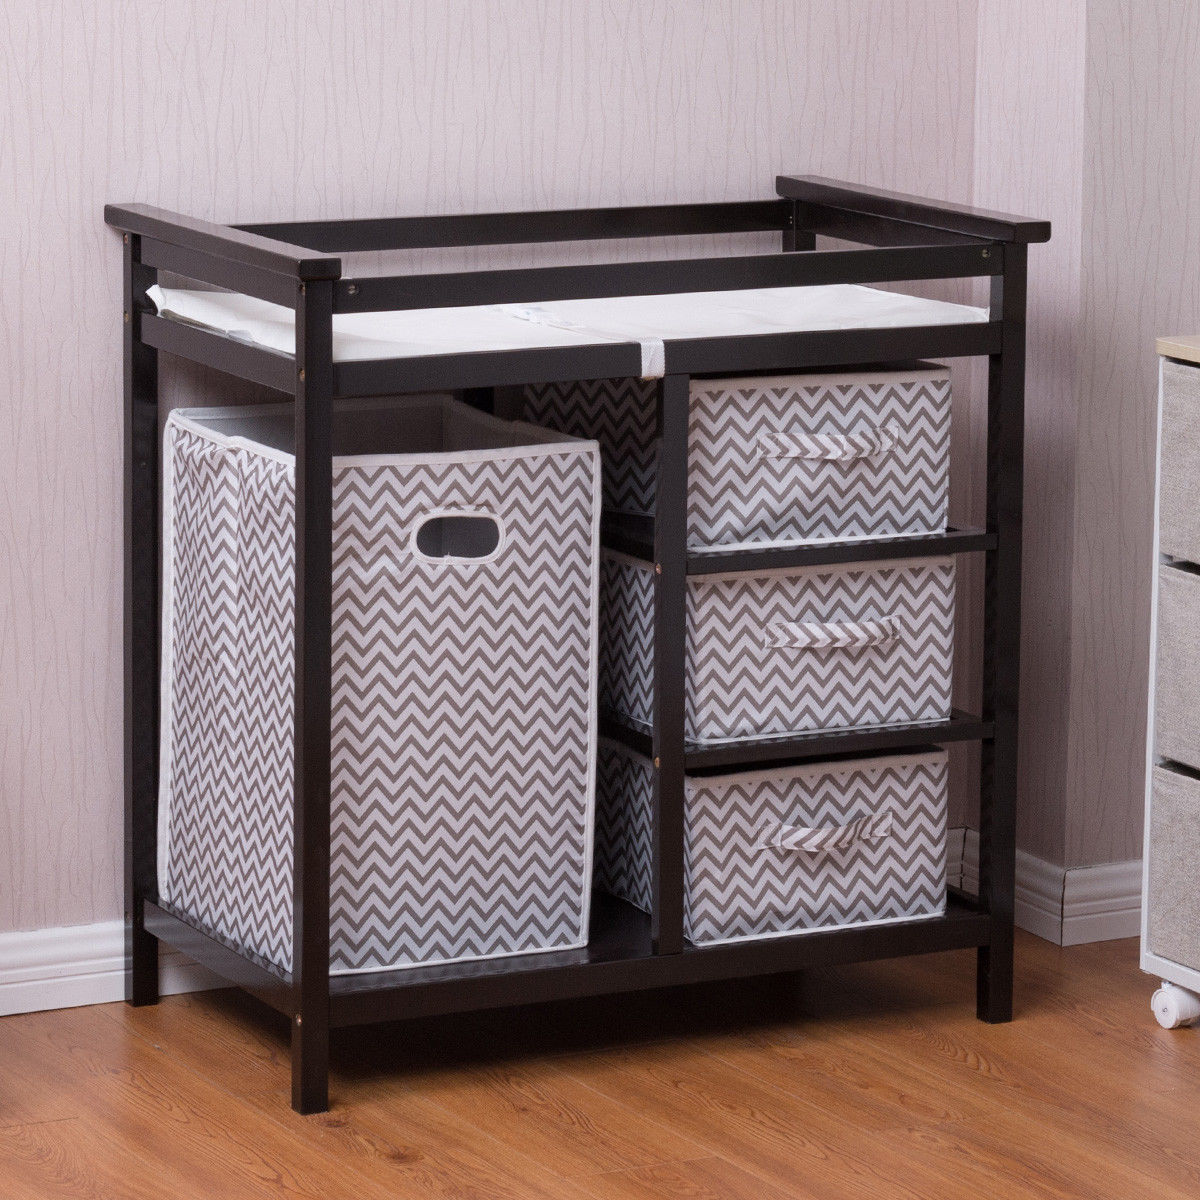 Product Image Costway Infant Baby Changing Table W/3 Basket Hamper Diaper  Storage Nursery